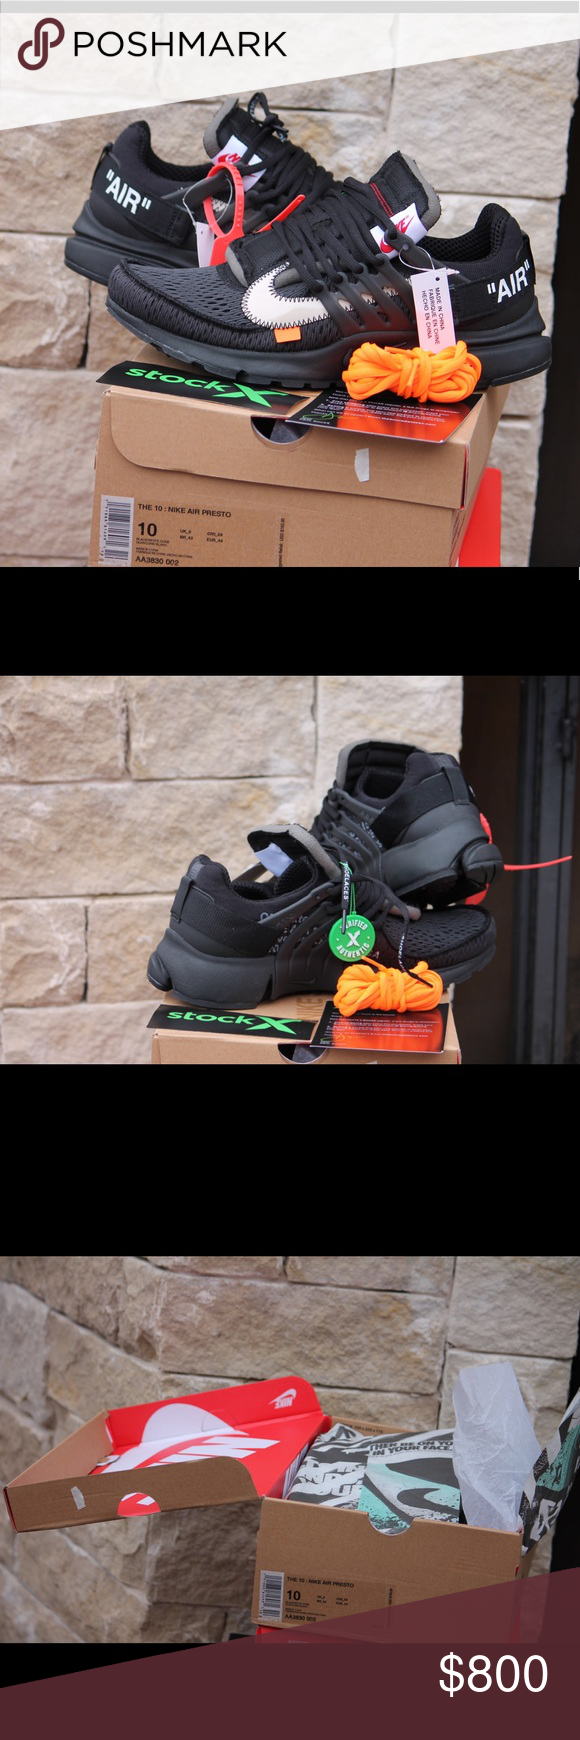 Off-White x Air Prestos Black Size 10 DS Selling on GOAT